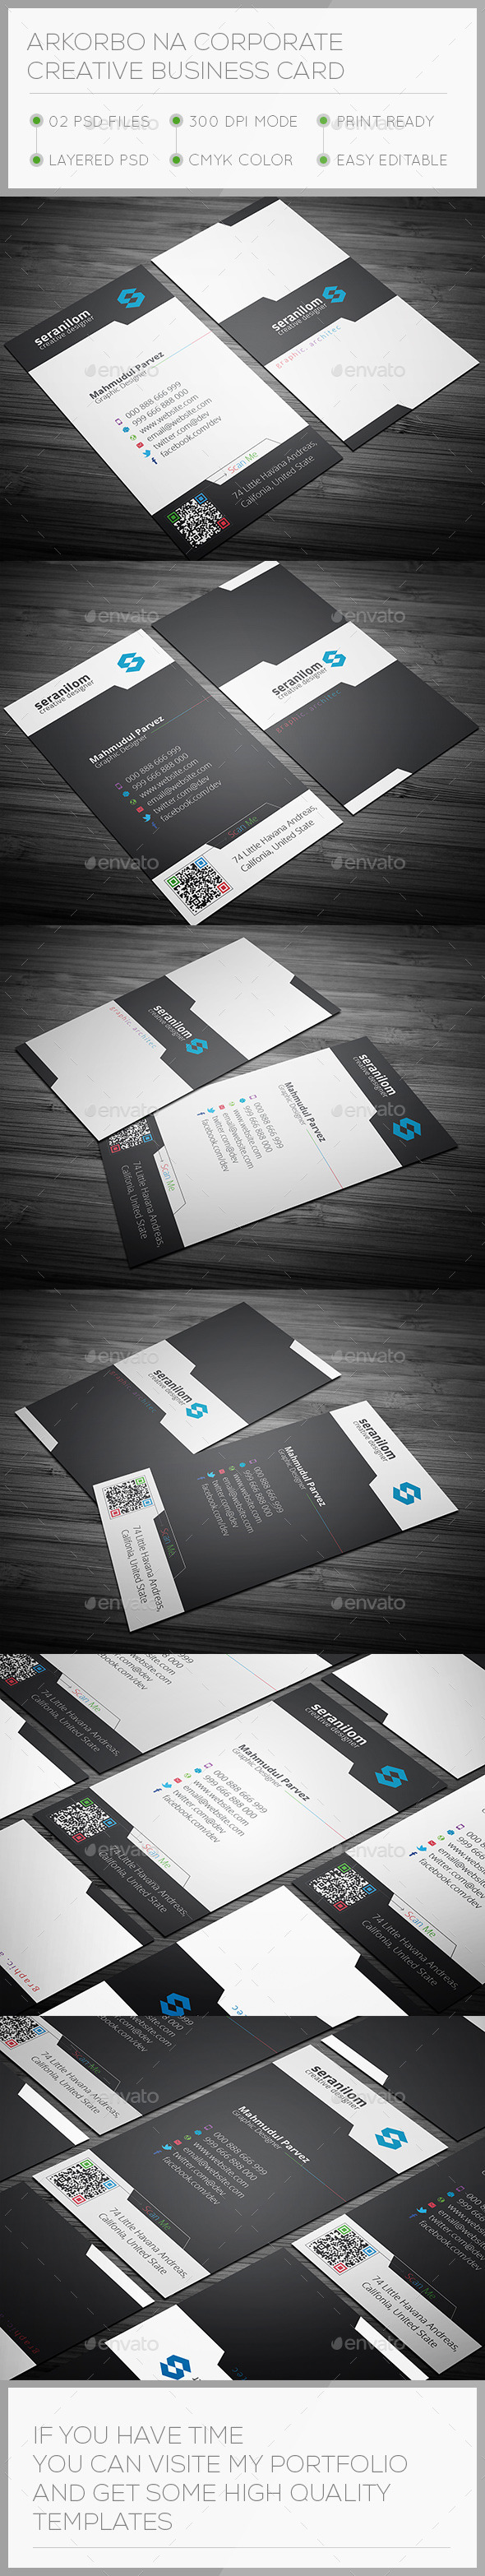 Arkorbona Corporate Creative Business Card